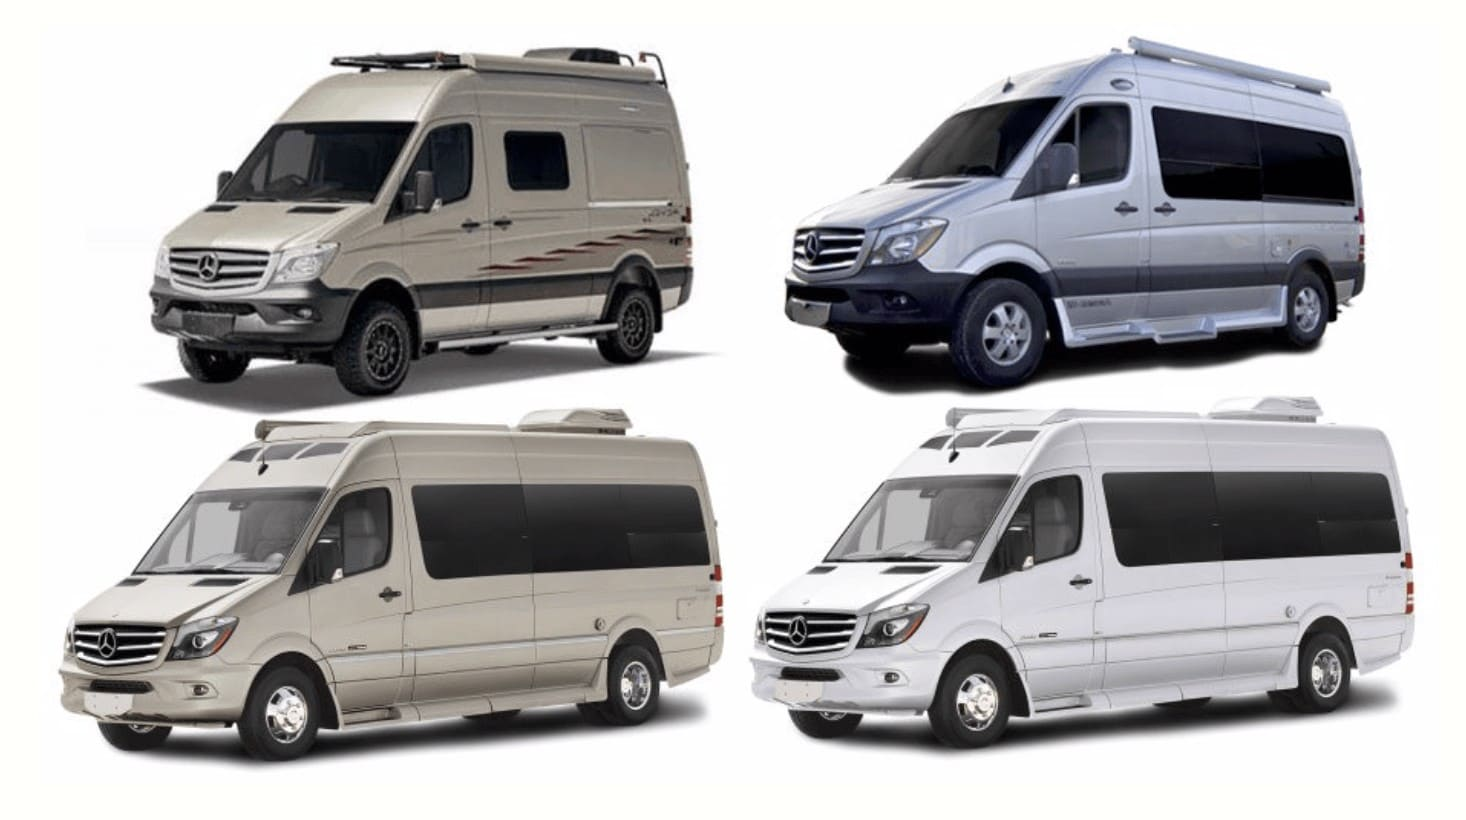 Mercedes Sprinter RV Rental // Rent an adventuremobile from one of these camper van rental companies & choose from Sprinters, Vanagons, Ford Transits, Sportsmobiles & more!